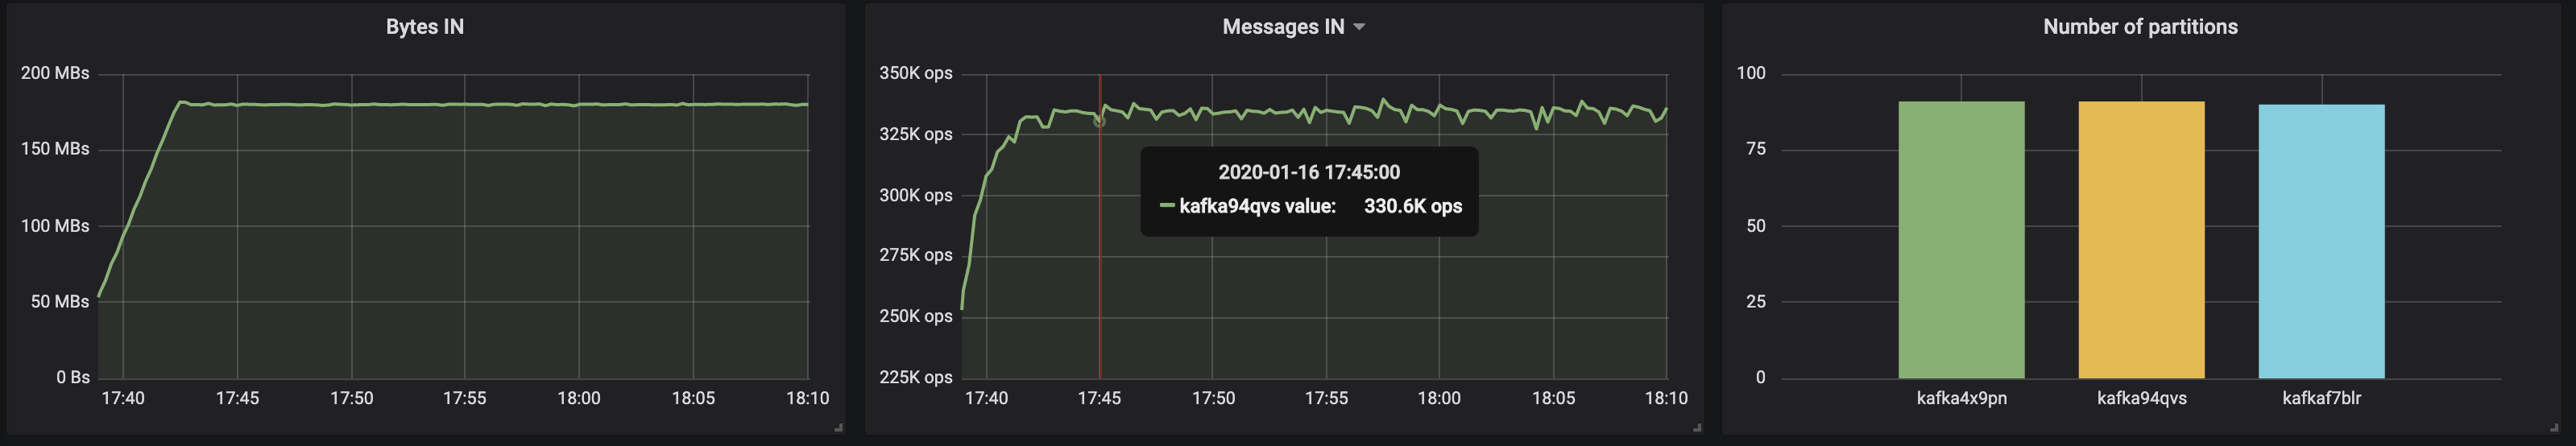 kafka94qvs messages in